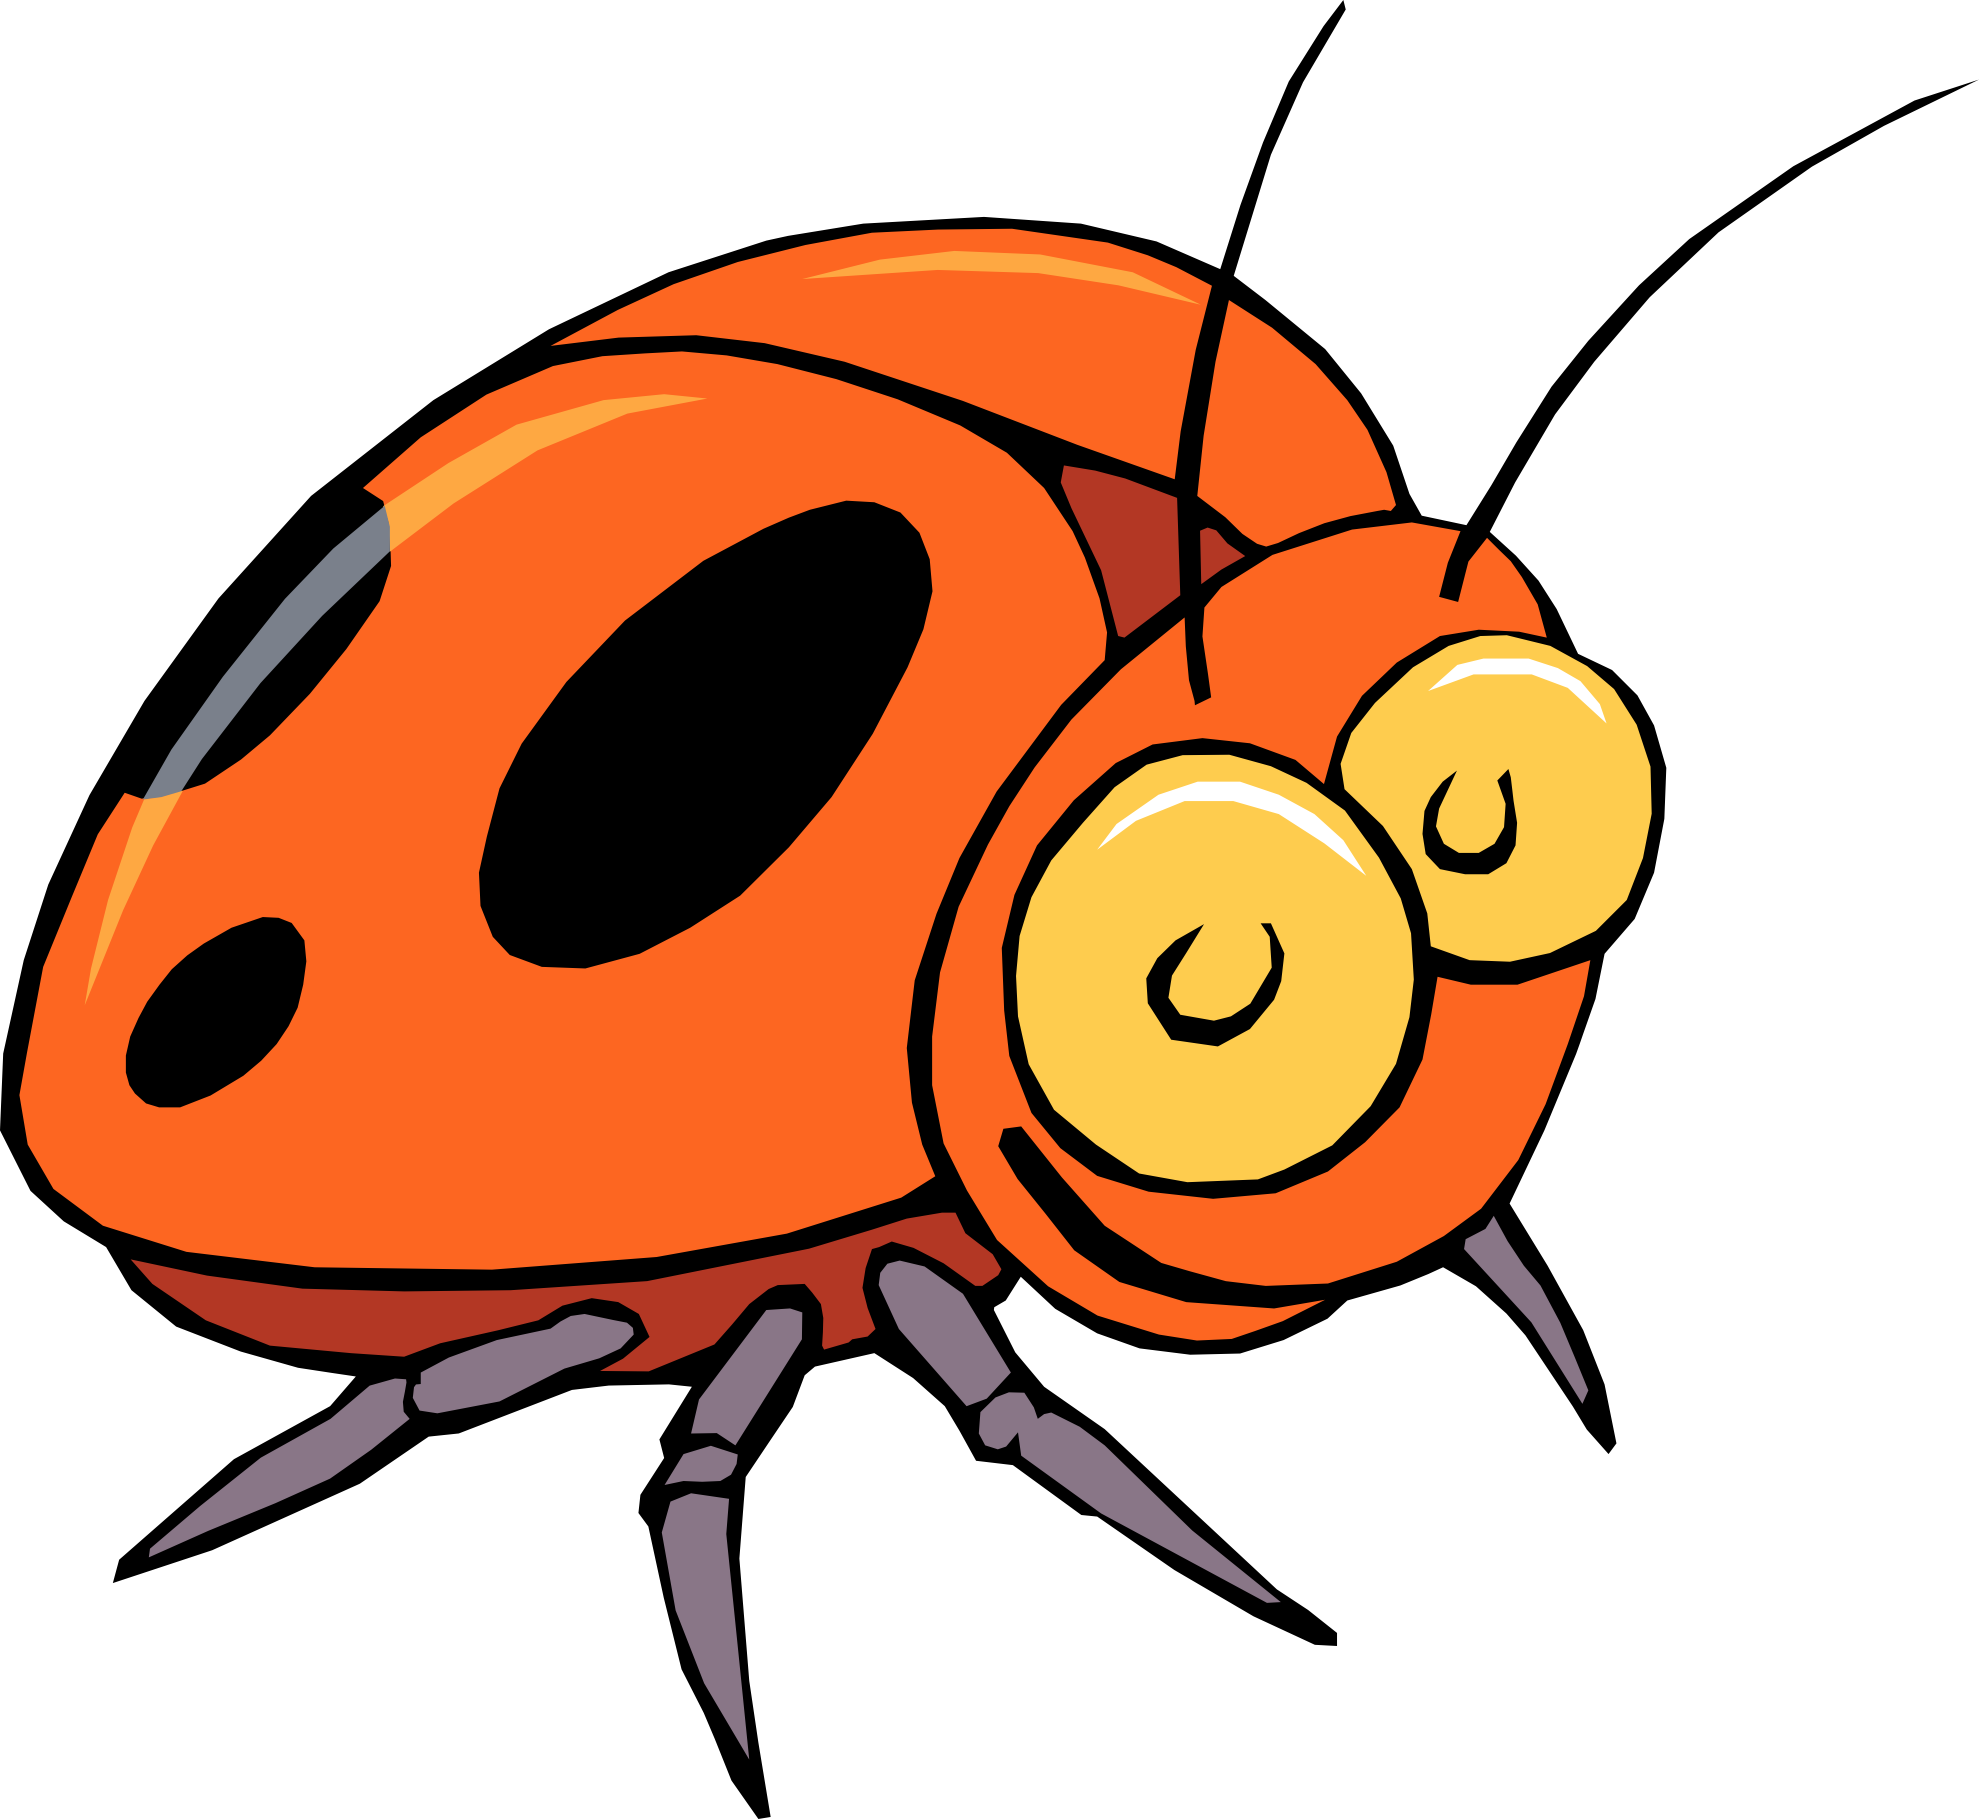 Insect Clipart Kid 3-Insect clipart kid 3-15